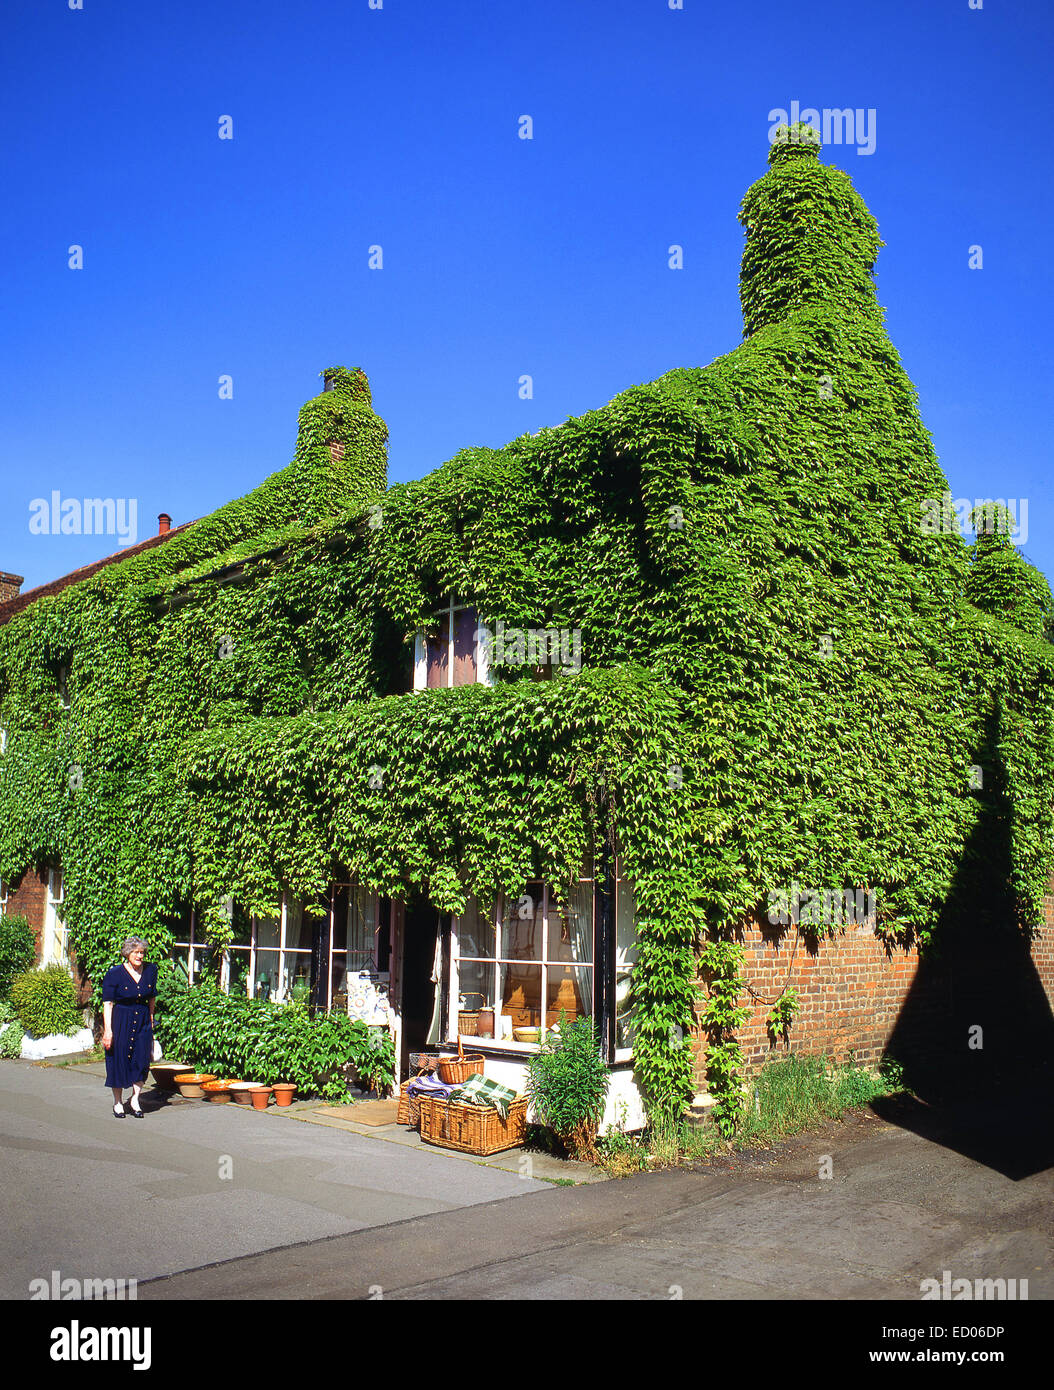 House covered in ivy, Wycombe End, Old Beaconsfield, Buckinghamshire, England, United Kingdom - Stock Image